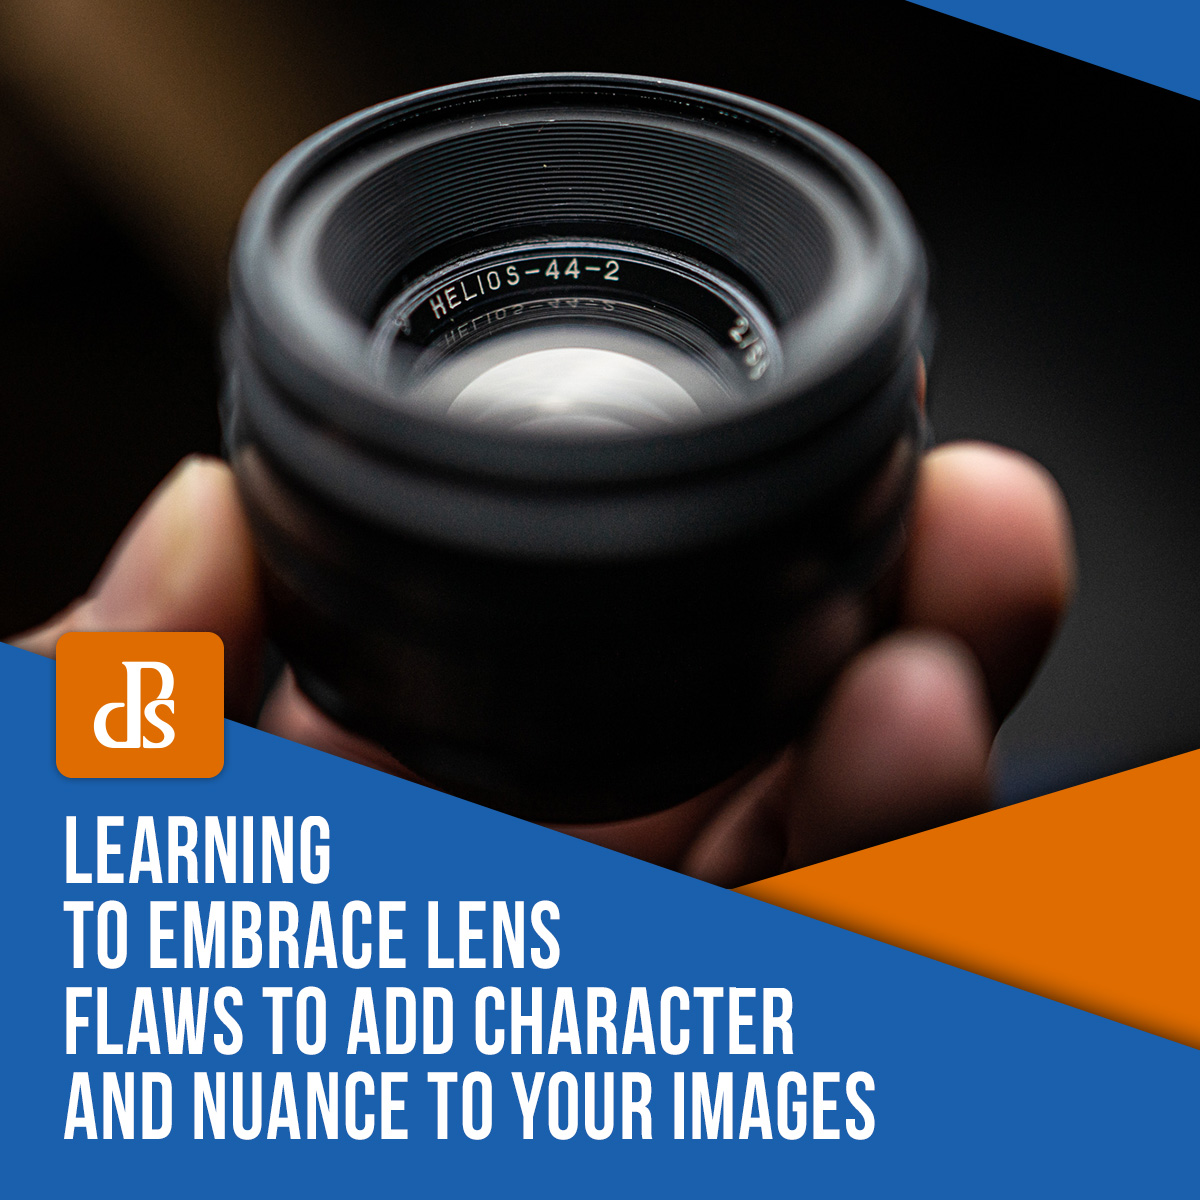 Learning to Embrace Lens Flaws to Add Character and Nuance to Your Images Feature